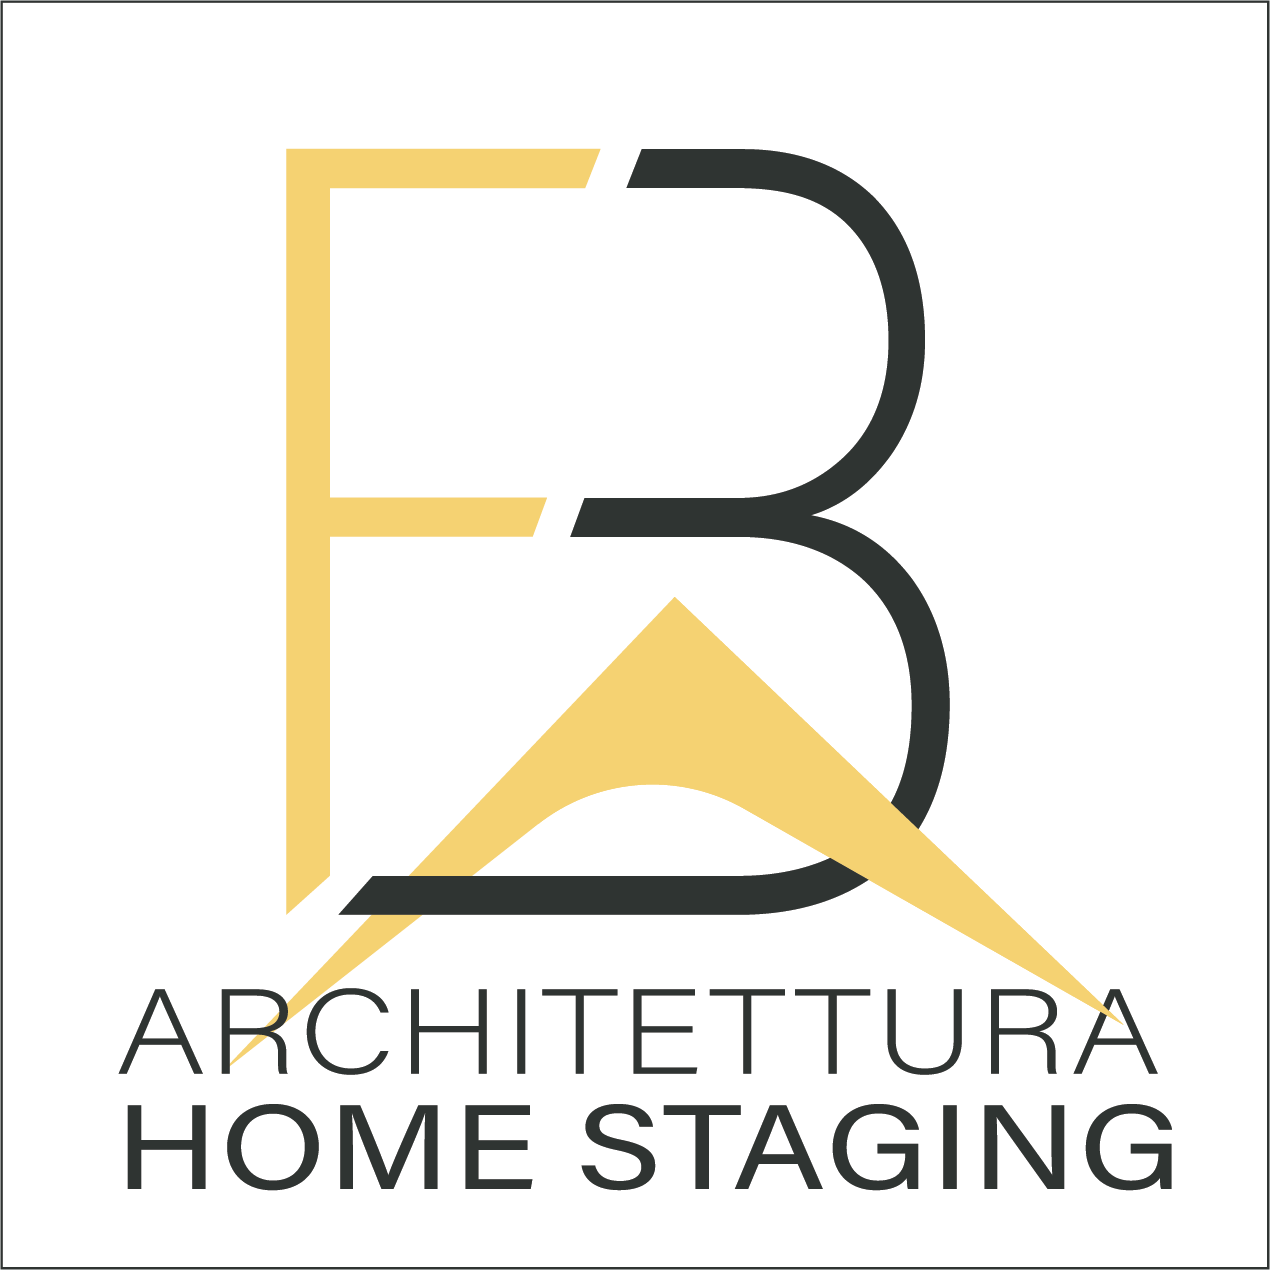 www.fbarchitetturahomestaging.it